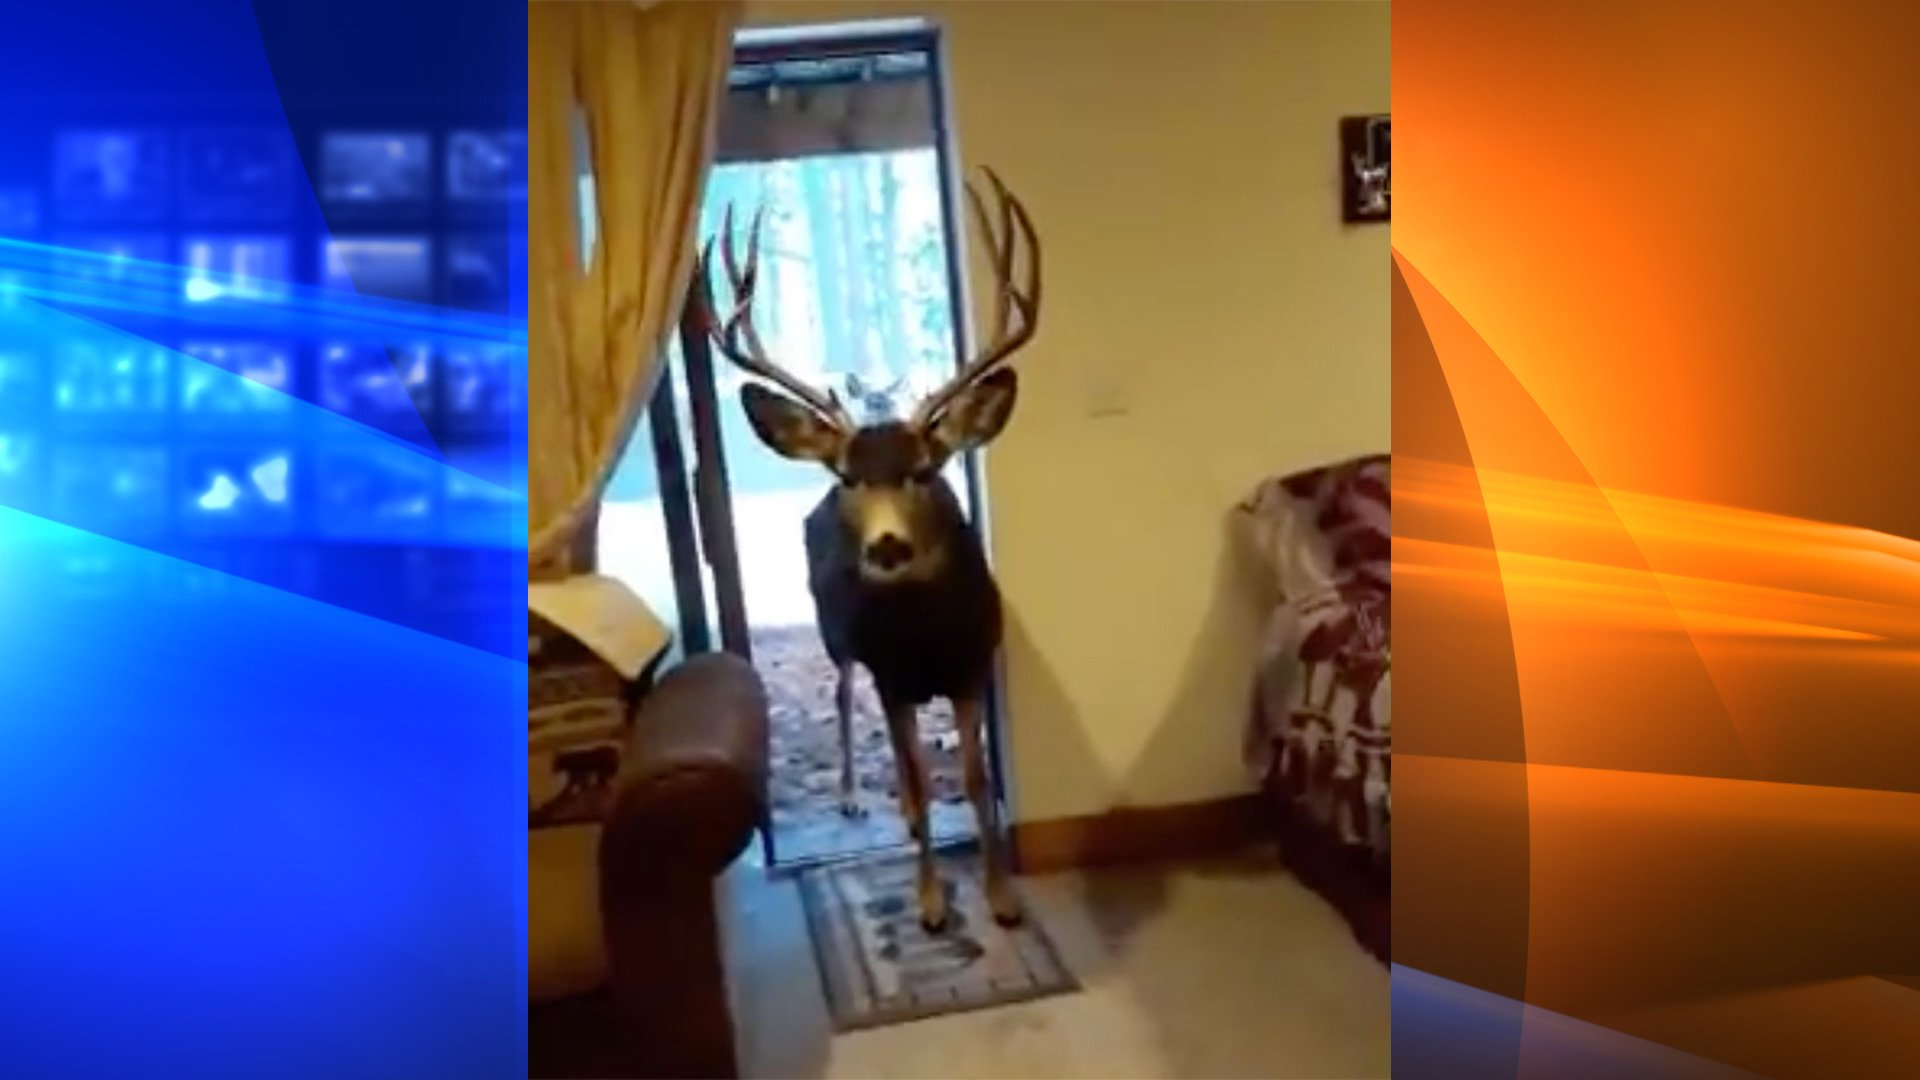 A woman was fined $550 for luring and feeding three deer inside her home, wildlife officials said on Feb. 10, 2020. (Credit: Colorado Parks and Wildlife/Twitter)